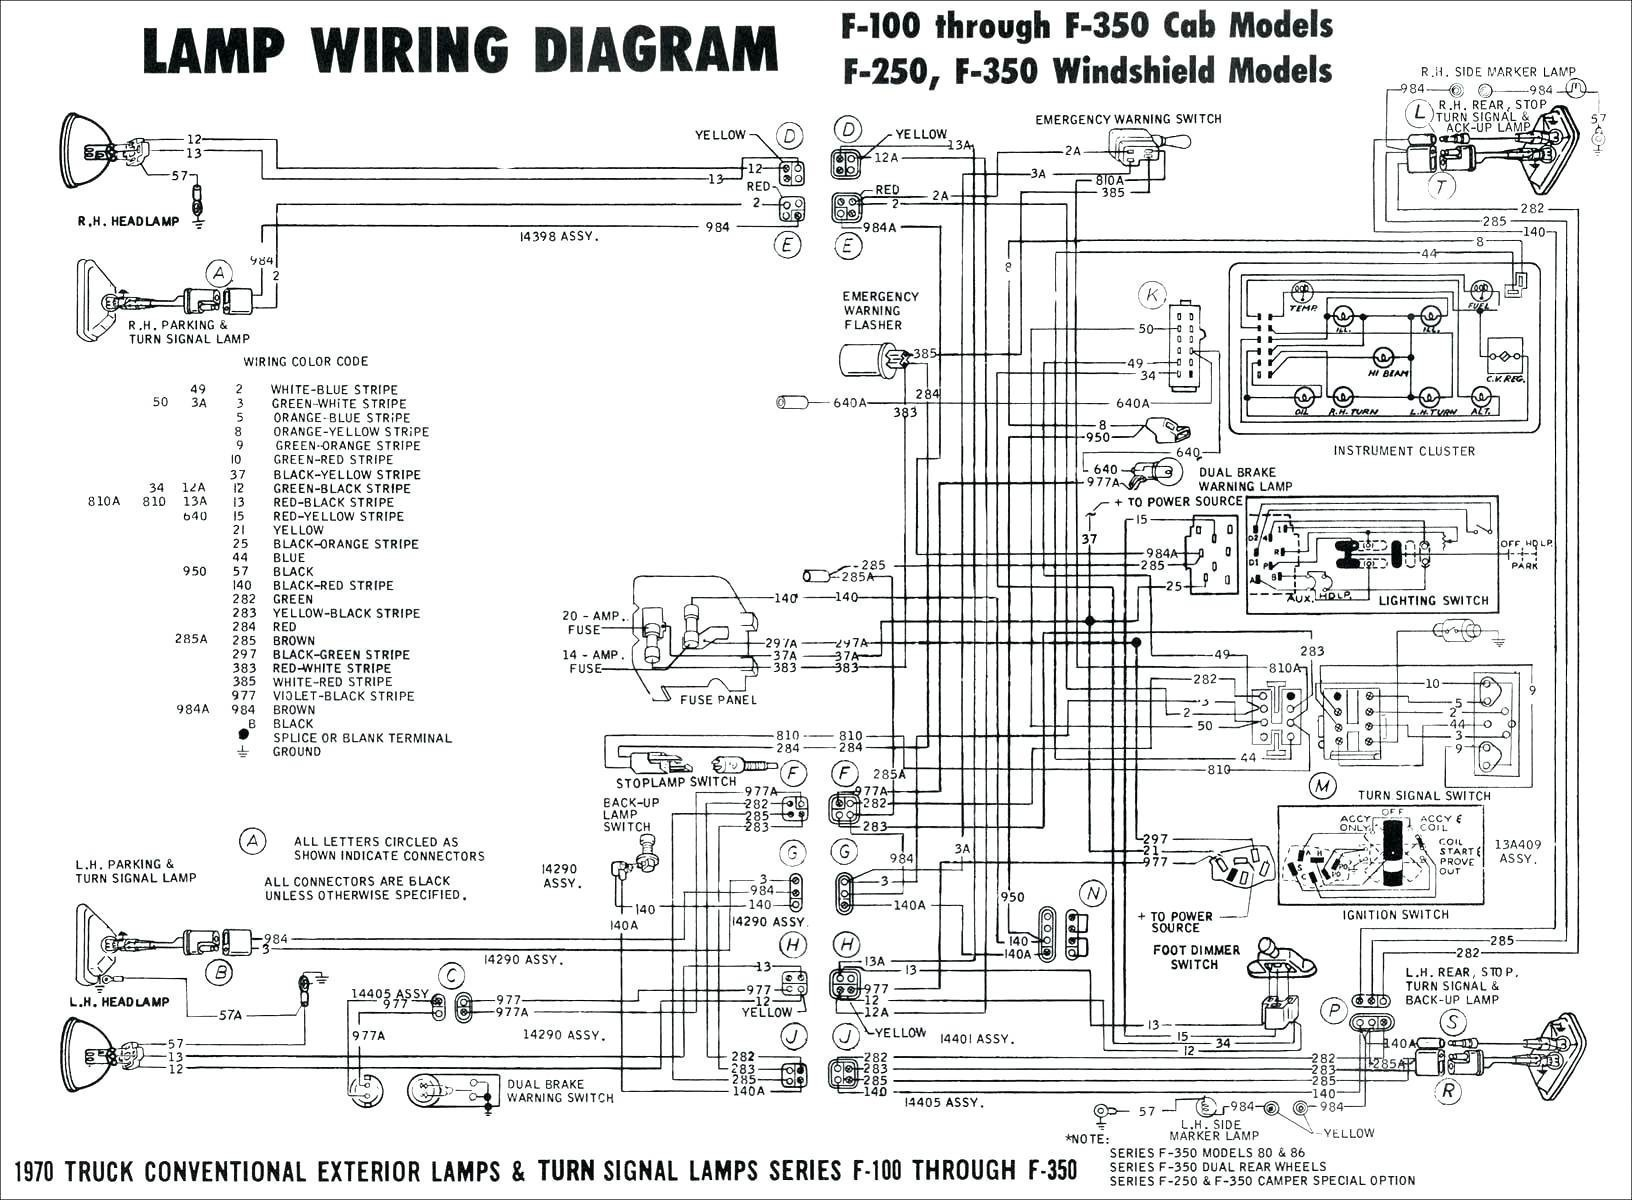 Coil Ignition System Diagram Wiring Diagram the Ignition System Refrence Basic Ignition System Of Coil Ignition System Diagram Ignition System Troubleshooting Wiring Diagram Fresh S10 Ignition